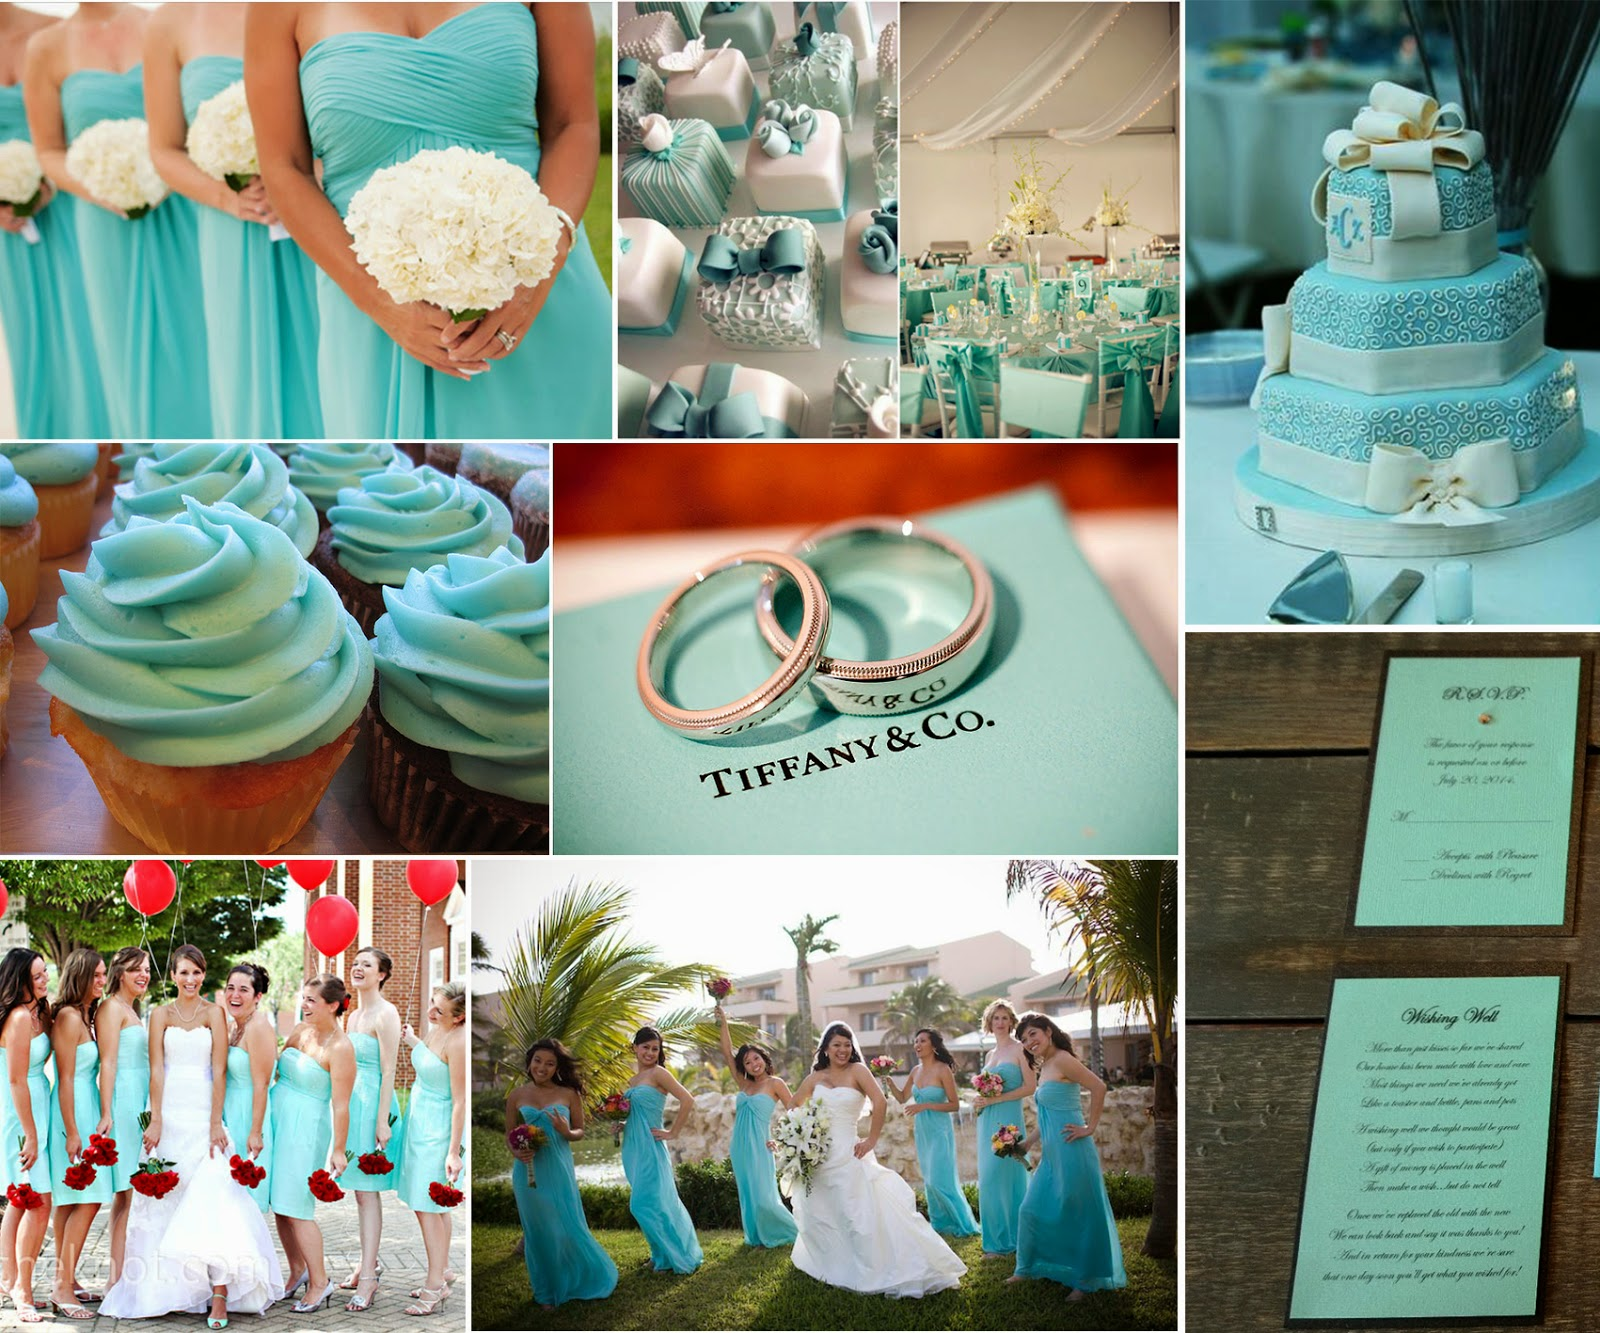 Tiffany green bridesmaid dresses images braidsmaid dress prom dress the tiffany blue theme wedding ideas bridesmaid dresses are also an important party of ombrellifo Choice Image